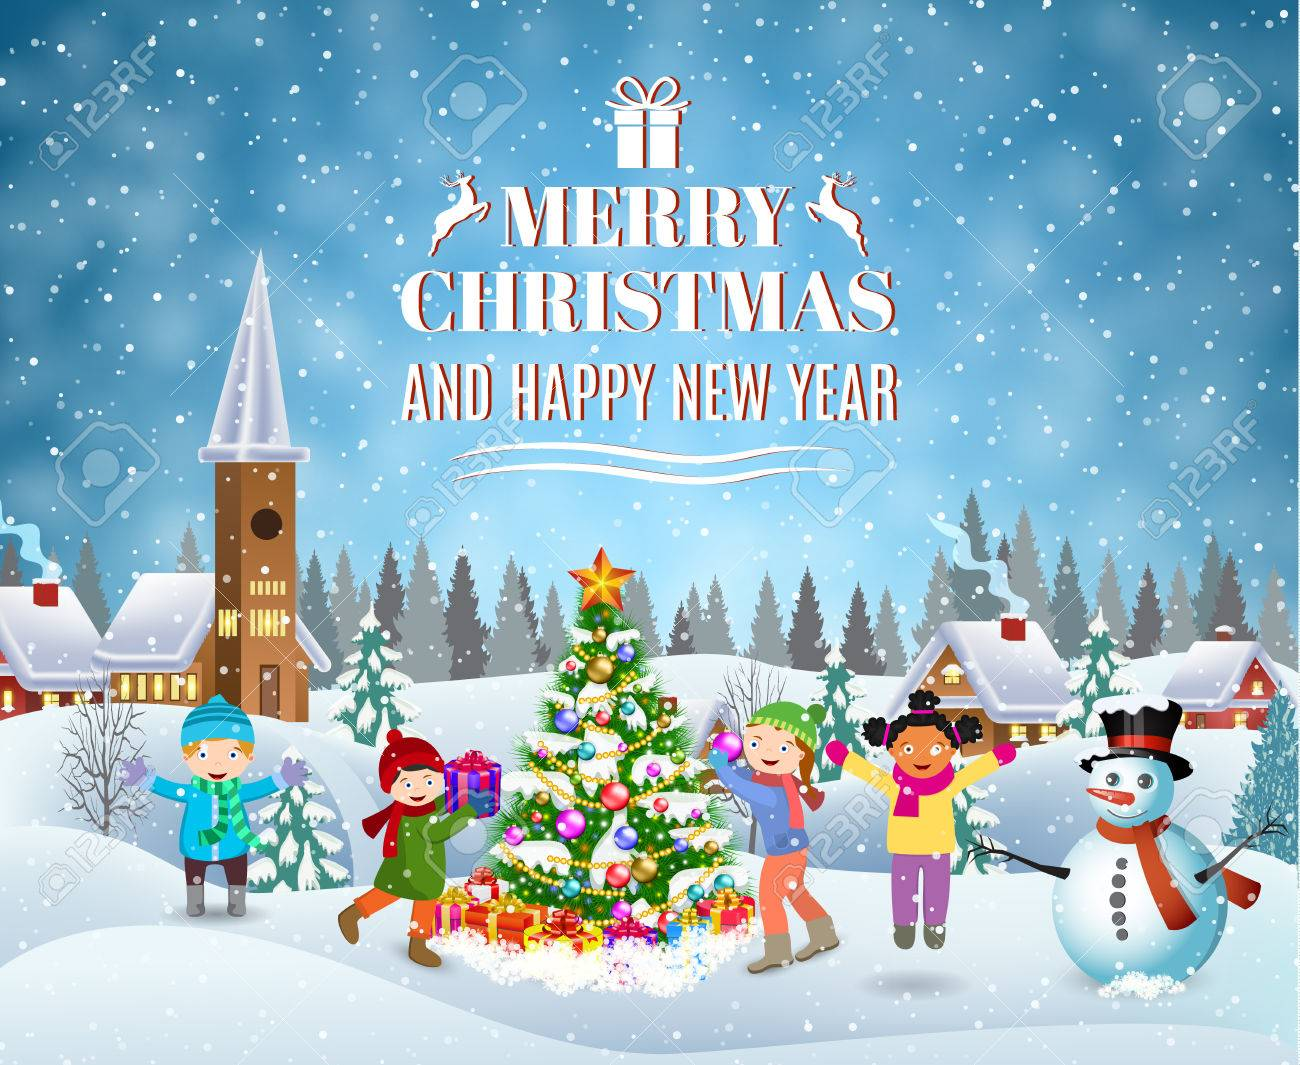 happy new year and merry christmas greeting card winter fun royalty free cliparts vectors and stock illustration image 65879208 happy new year and merry christmas greeting card winter fun